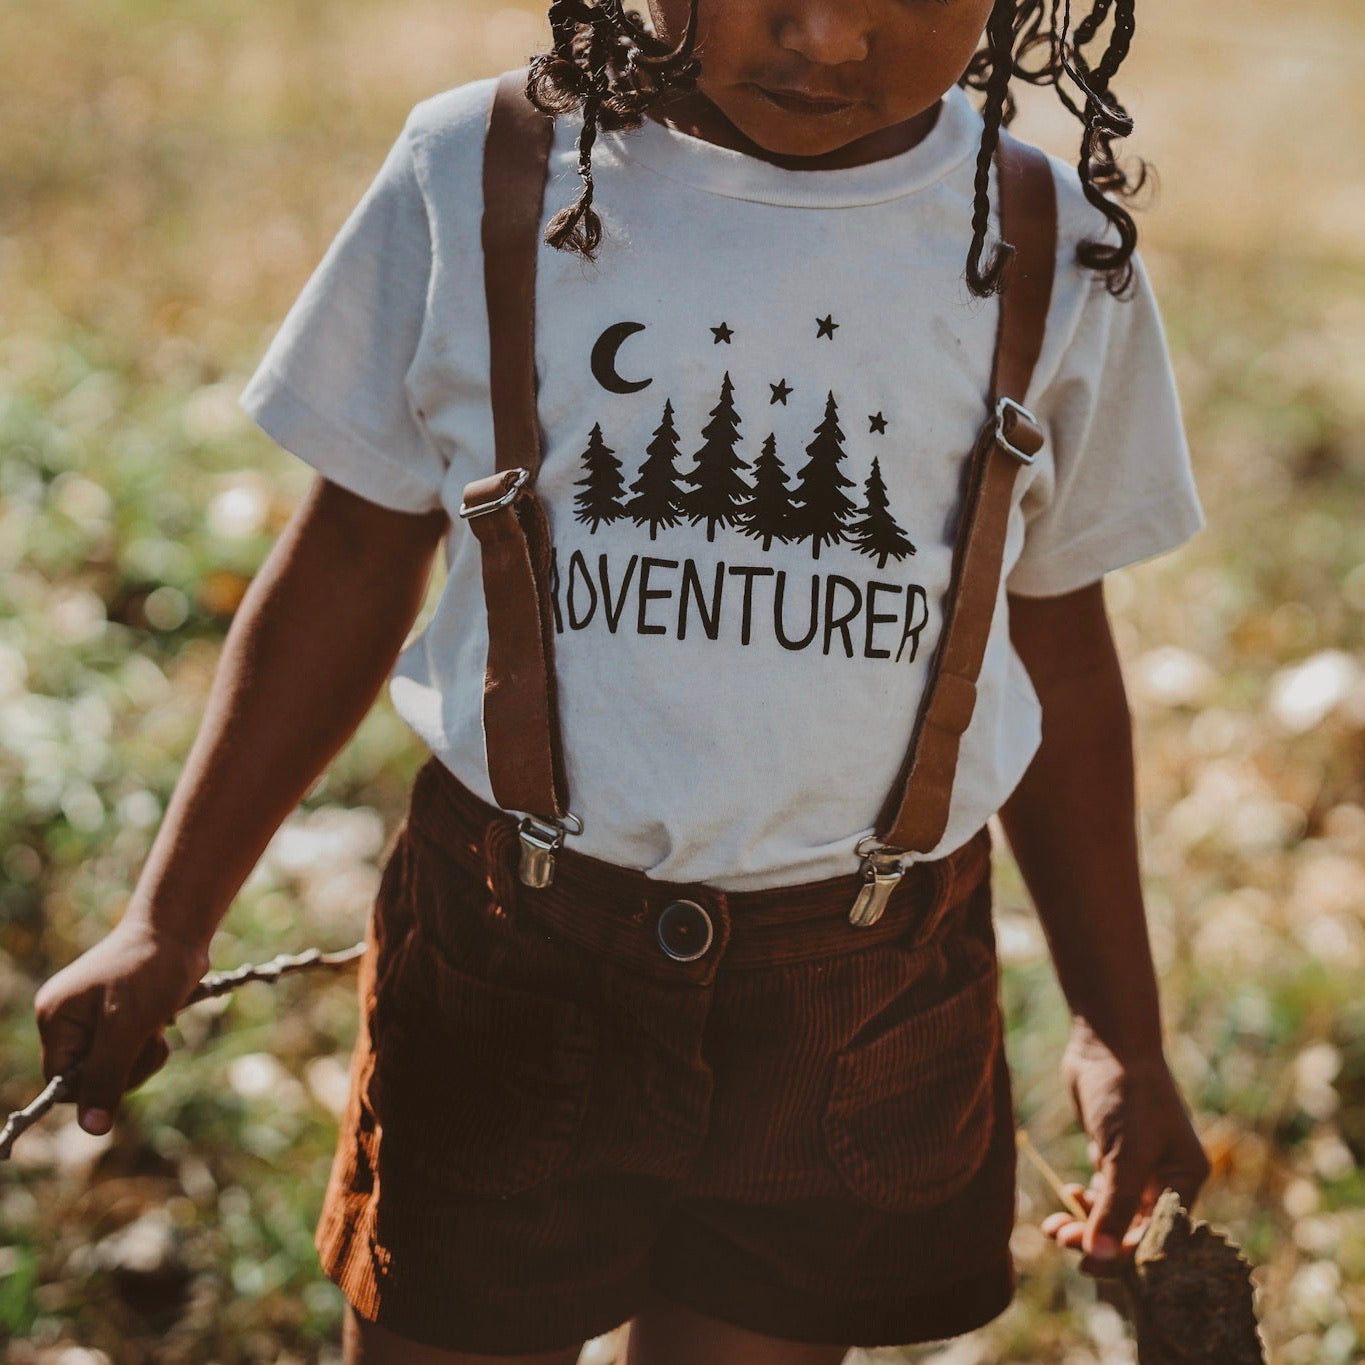 Adventurer | Bodysuit | Toddler Tee